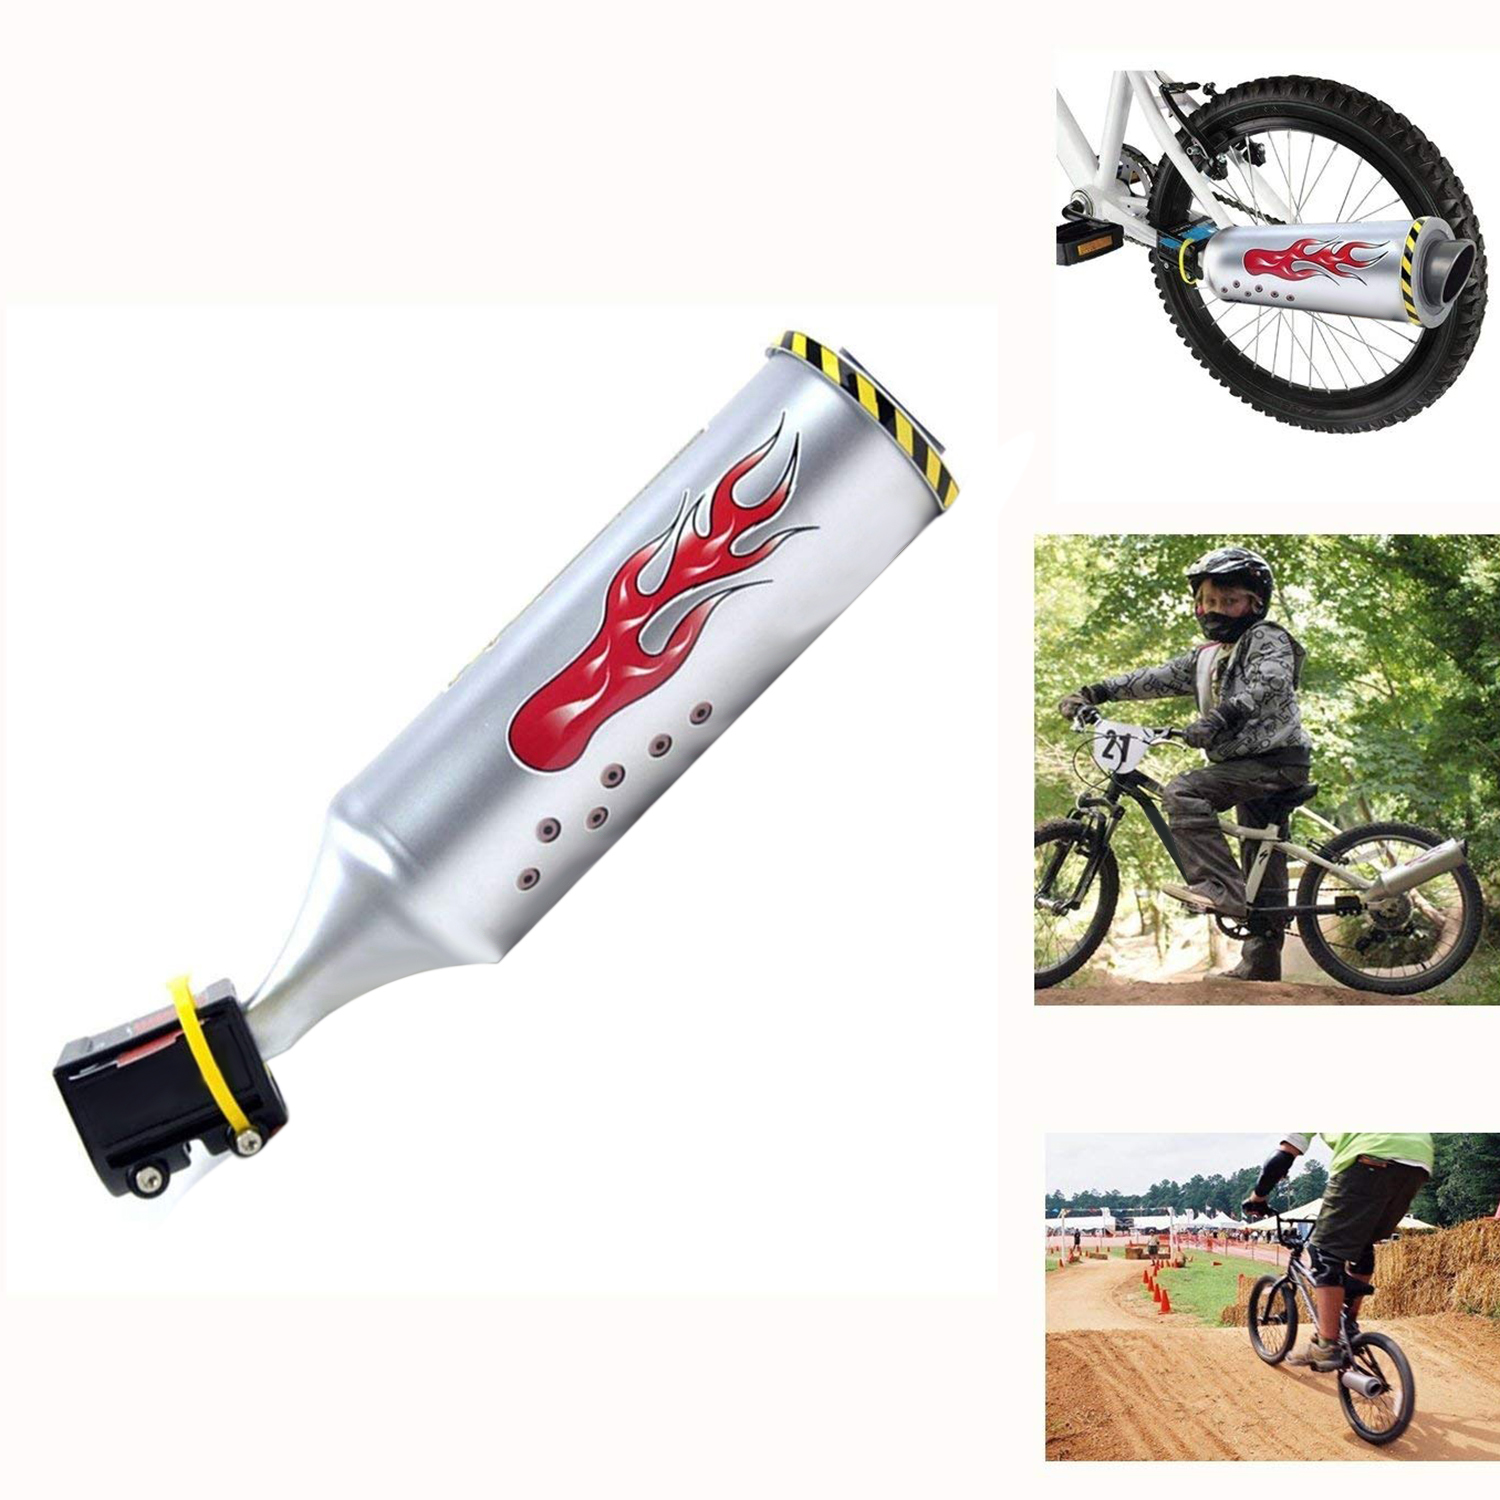 Bicycle Exhaust Sound System With 6 Adjustable Turbo Motorcycle Sound,Childrens Motor Sound Bike Engine Cycling Accessory